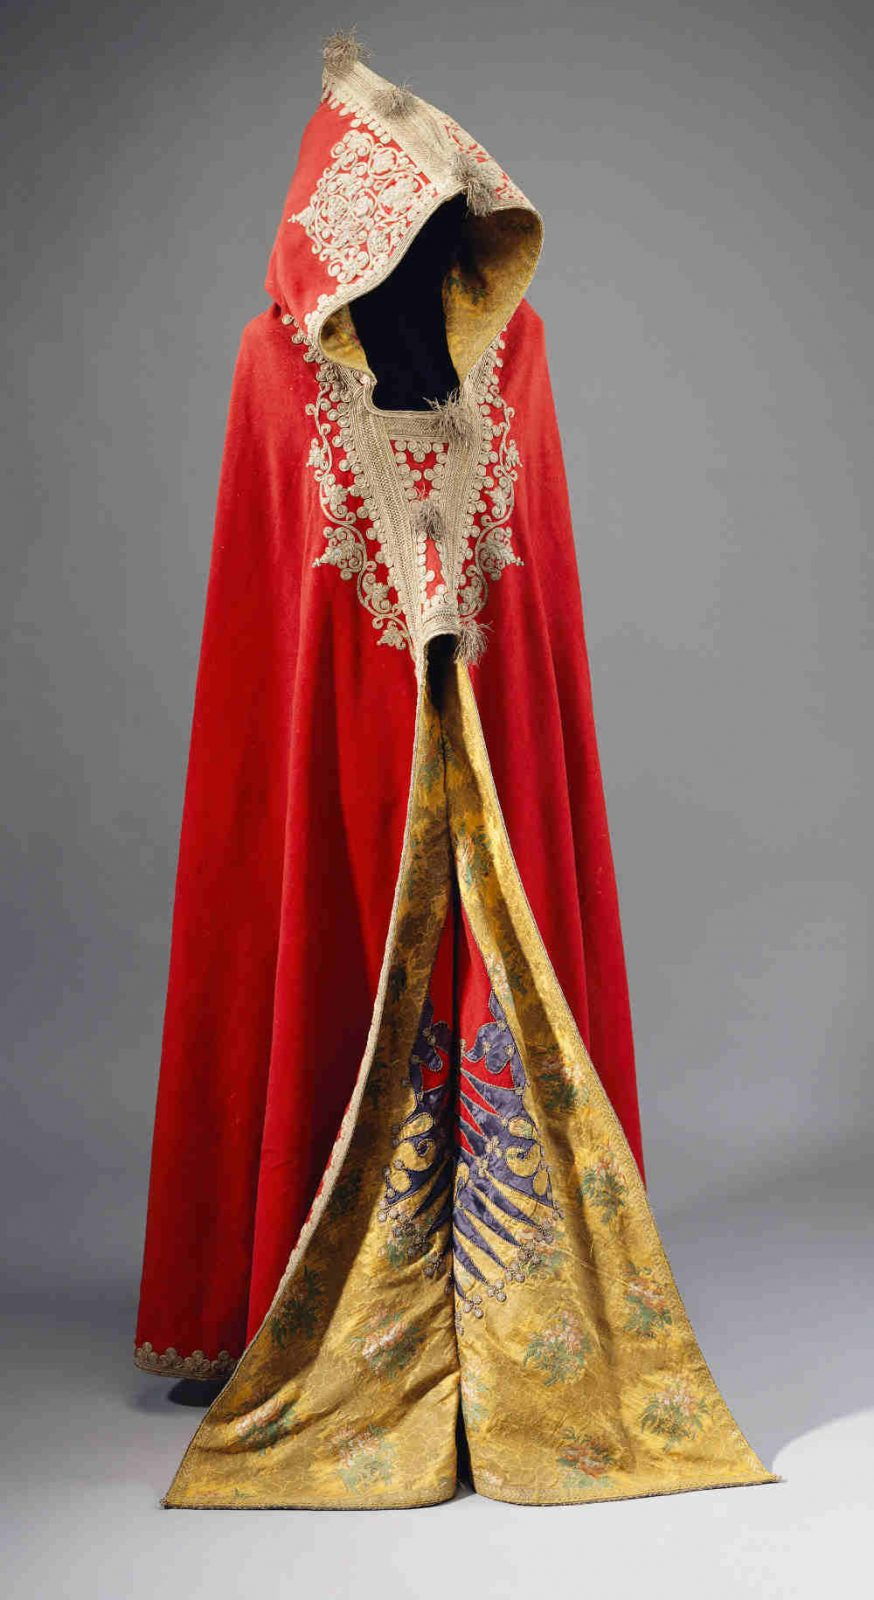 Prince and Patron, Buckingham Palace, Royal Family, Prince Charles, Napoleon Cloak